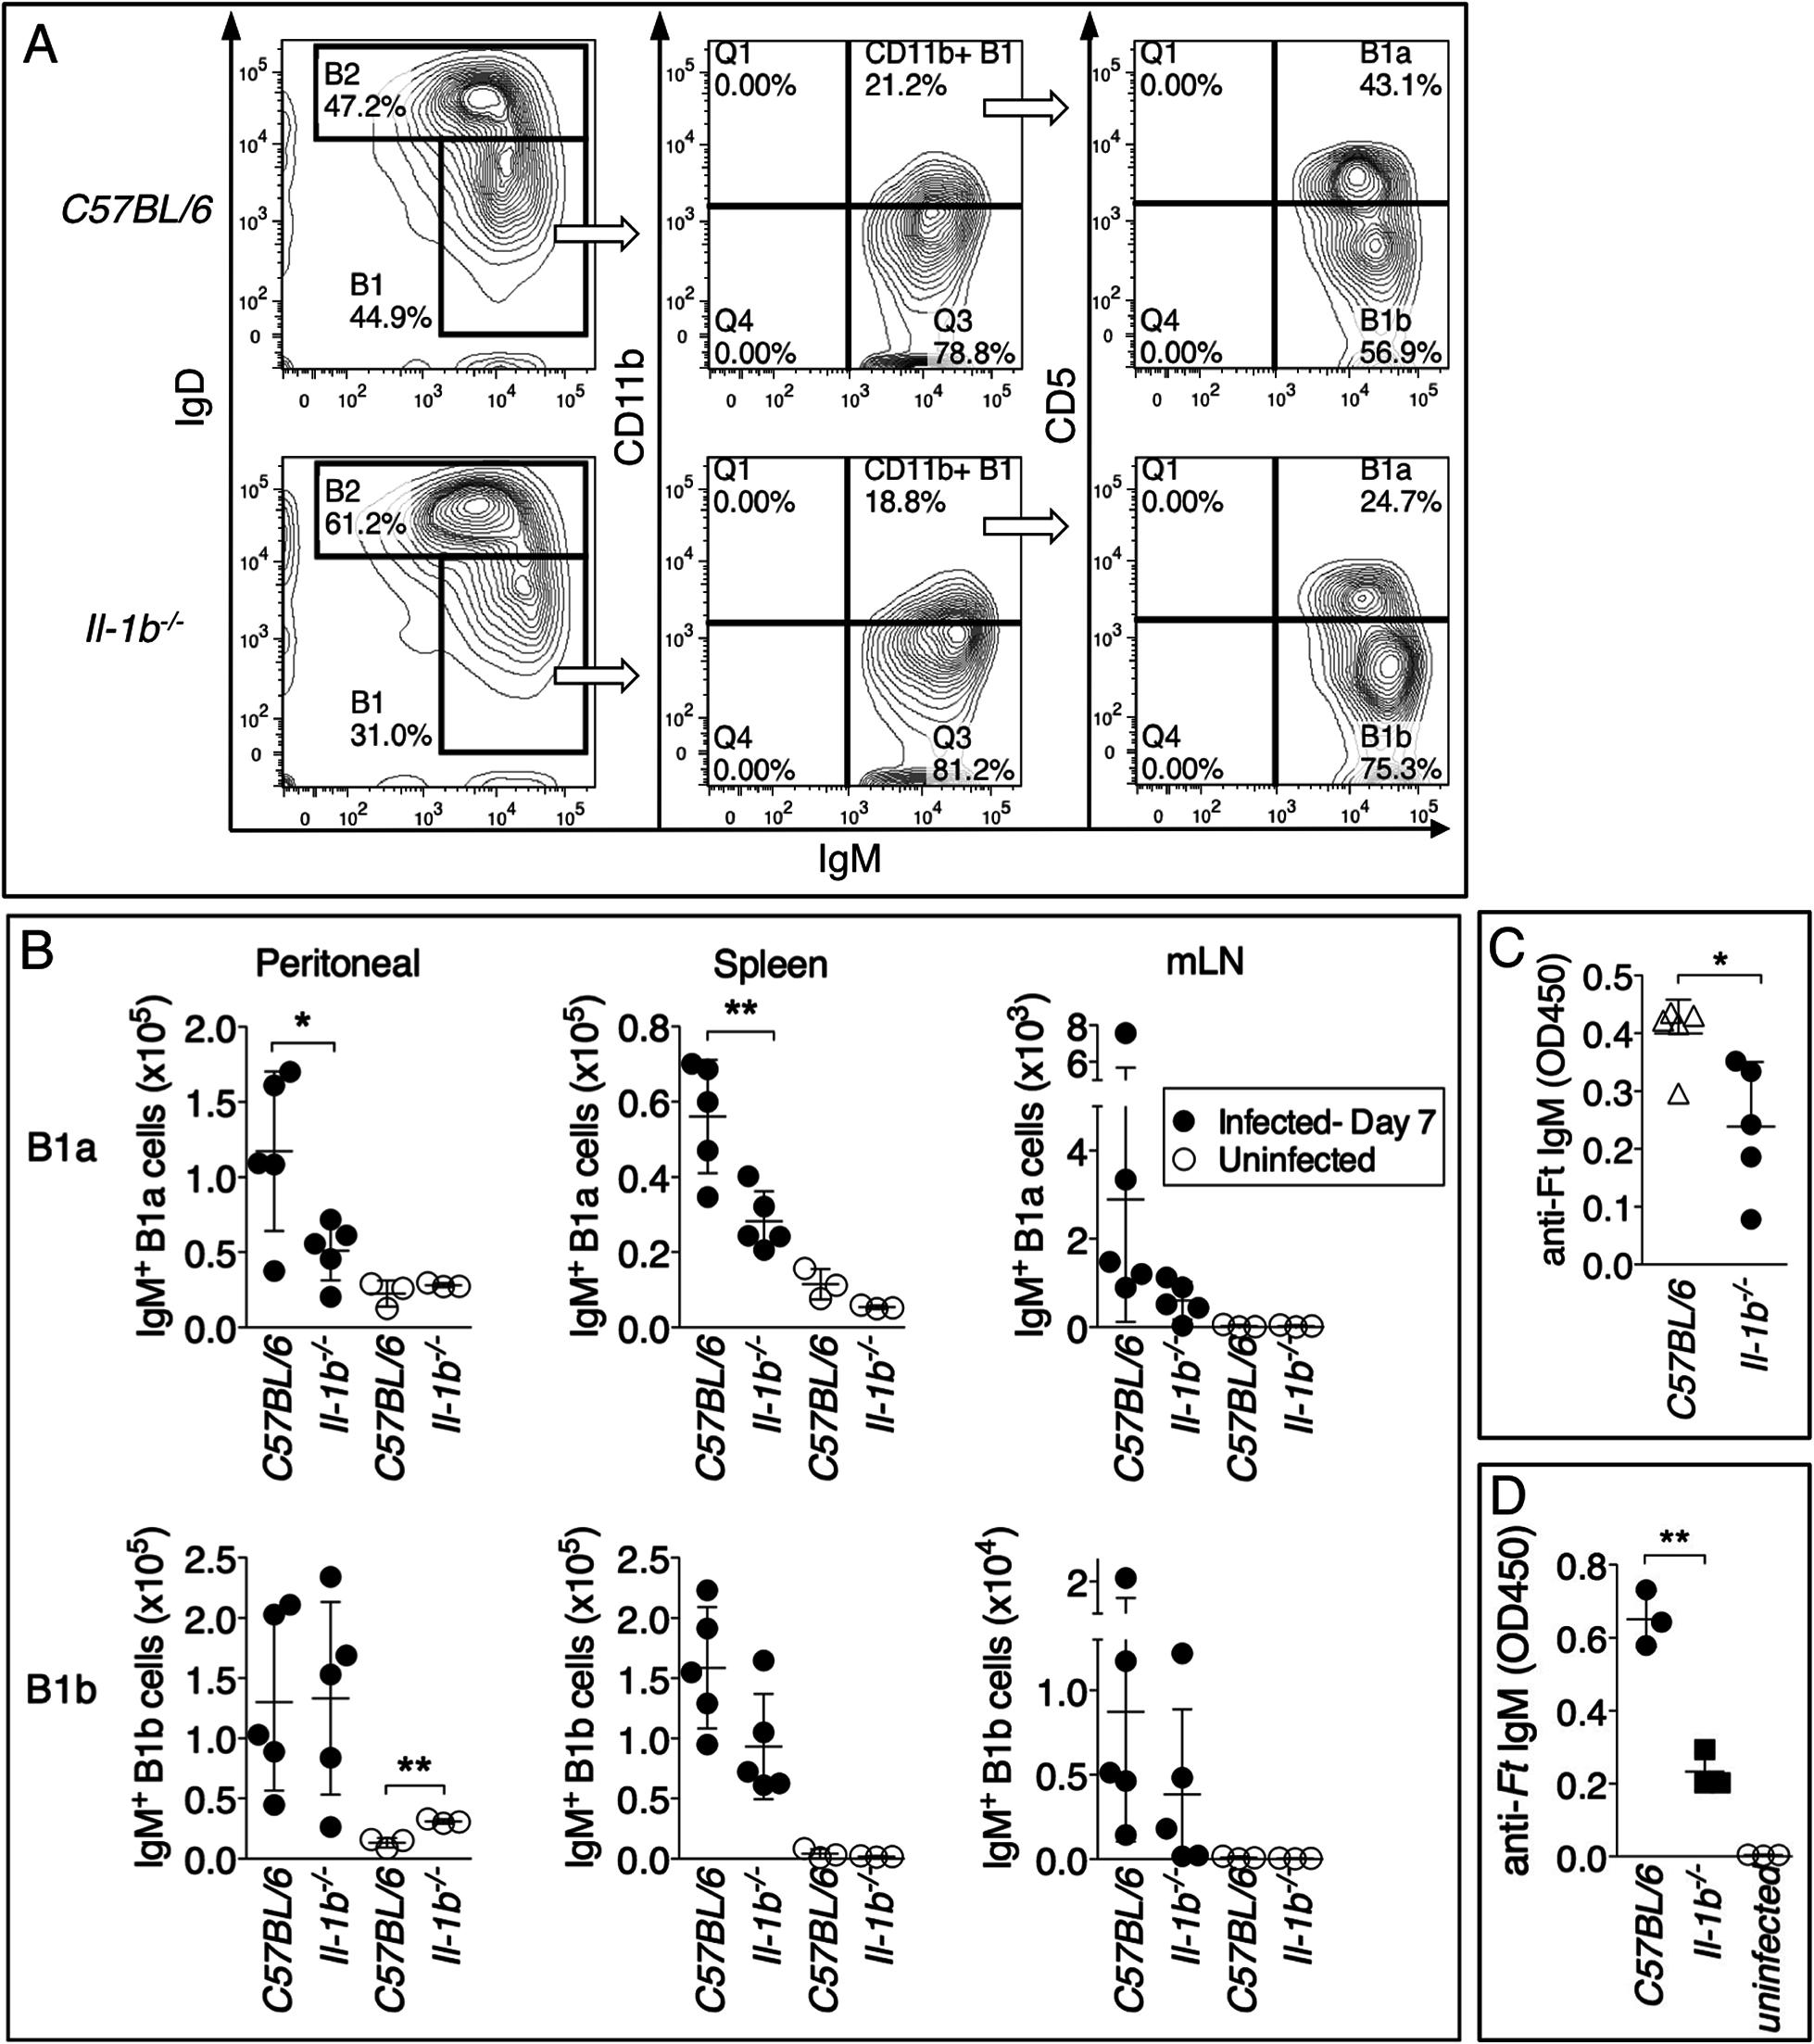 Reduced number of B1a B cells in <i>Il-1b</i><sup>-/-</sup> mice infected with <i>Ft</i> LVS.